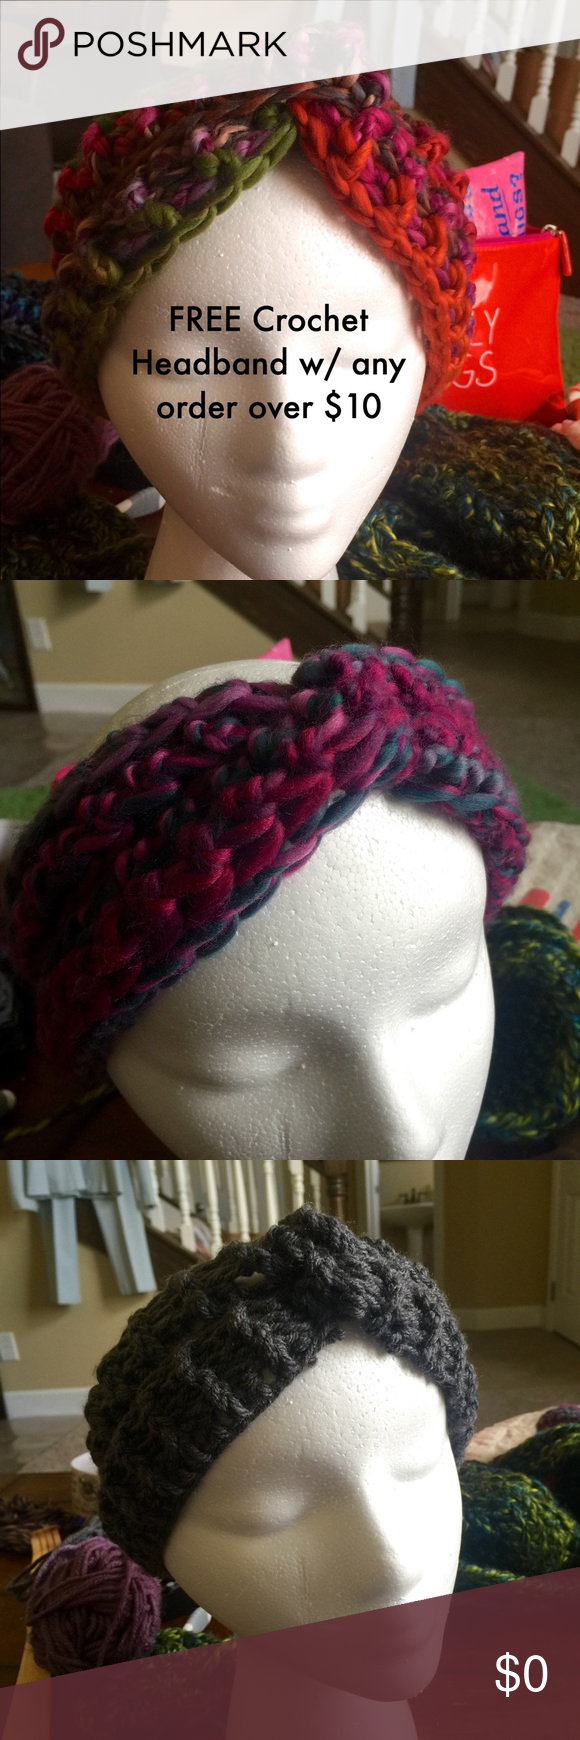 FREE Crochet Headband/ Ear Warmer Get a free handmade crocheted turban-style ear warmer/ headband w/ any $10 purchase Send me a message on your color choice. 901 by Stacey Accessories Hair Accessories